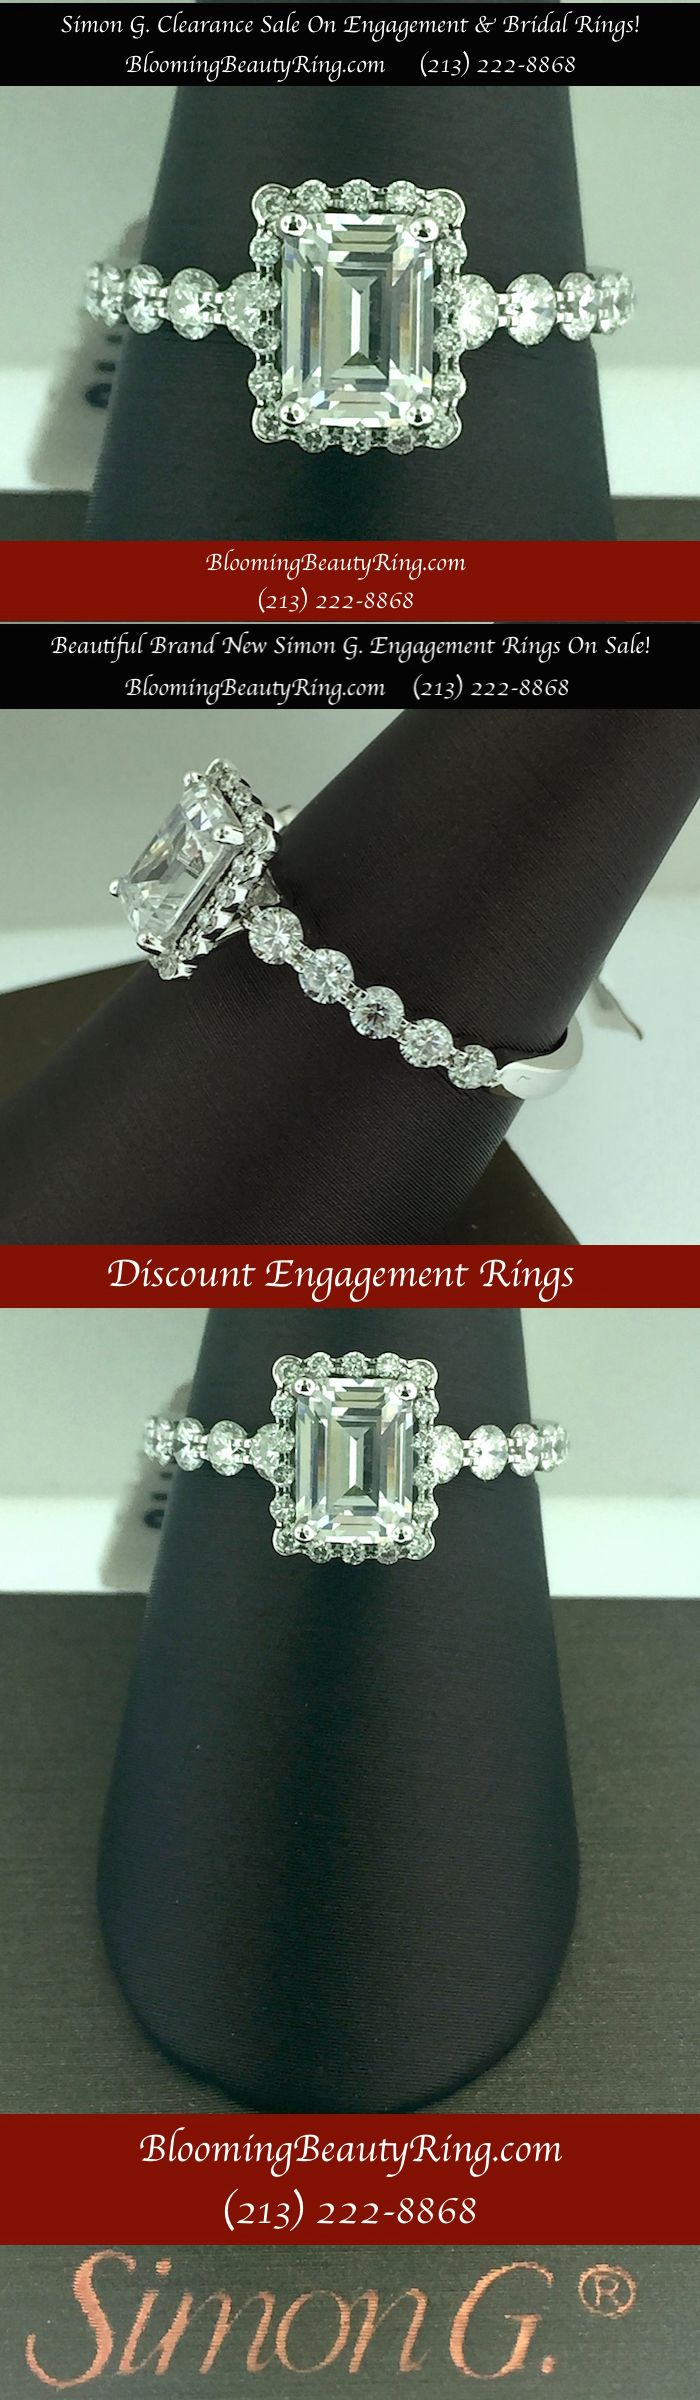 Simon G. Bridal Rings and Engagement Rings Clearance Sale…